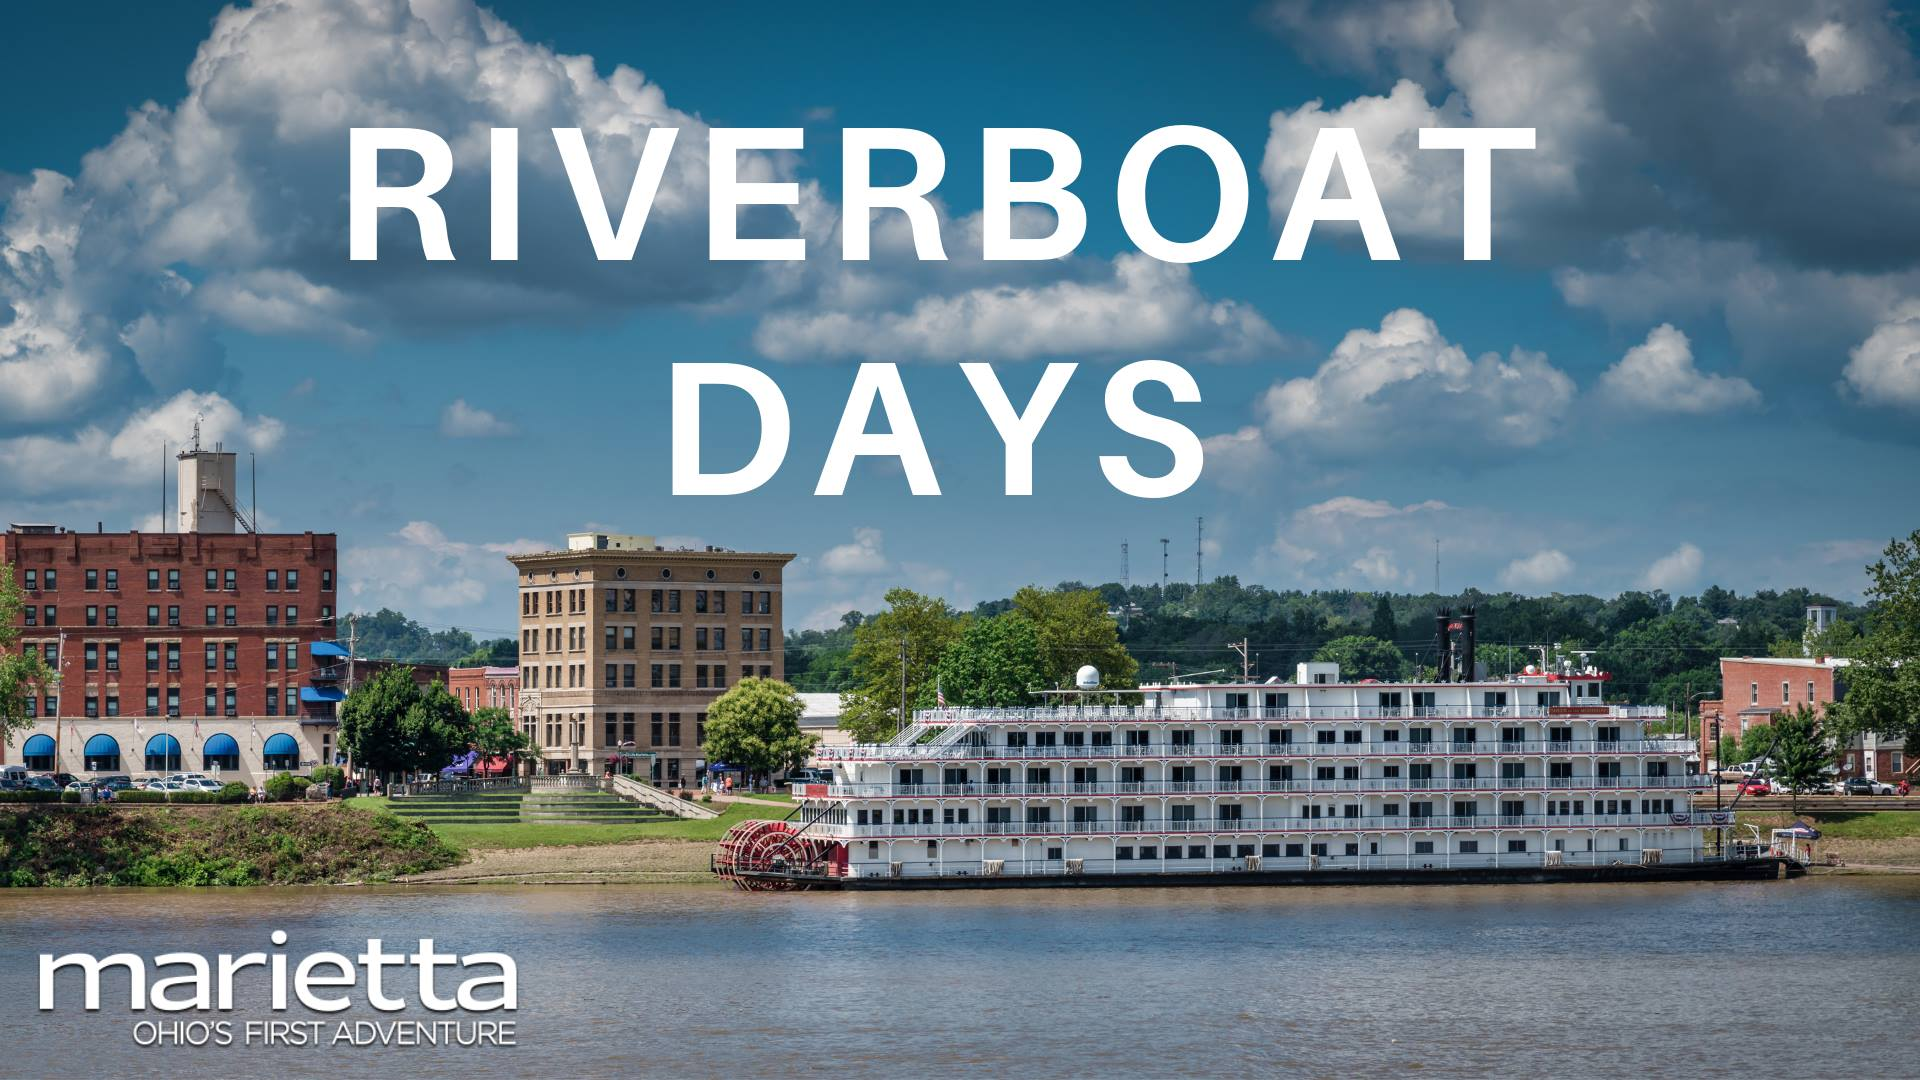 Riverboat Days: American Queen